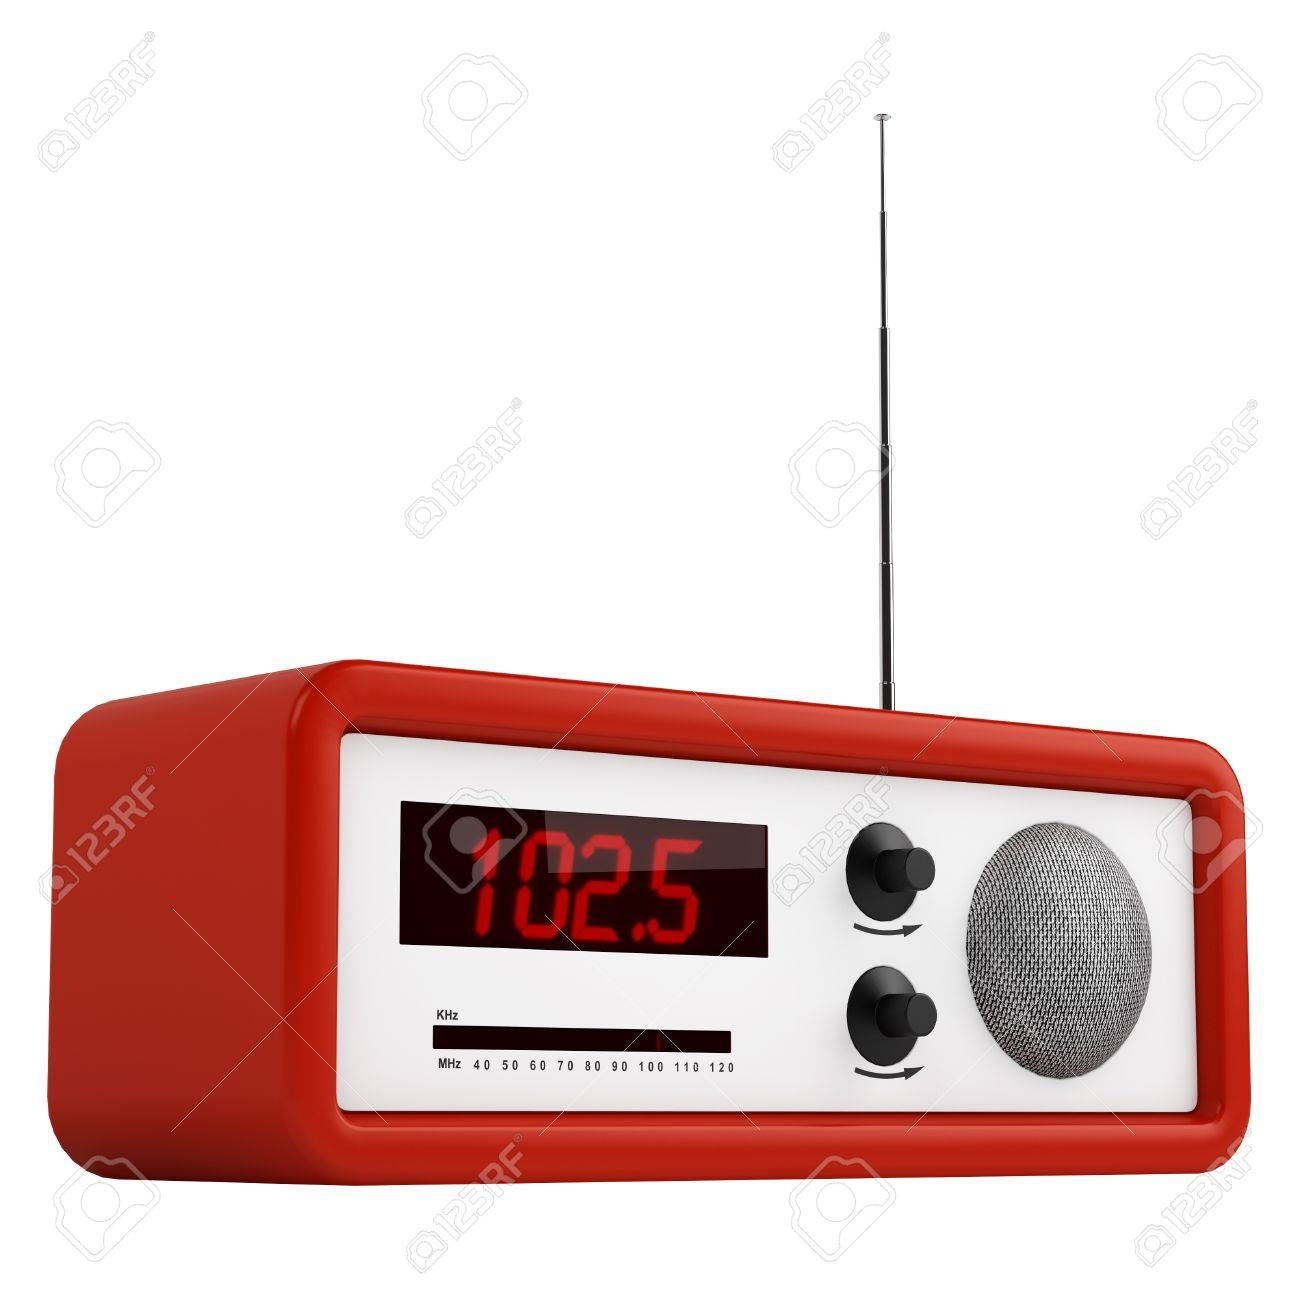 Red portable transistor radio with buttons, dial and aerial isolated on white Stock Photo - 15307117